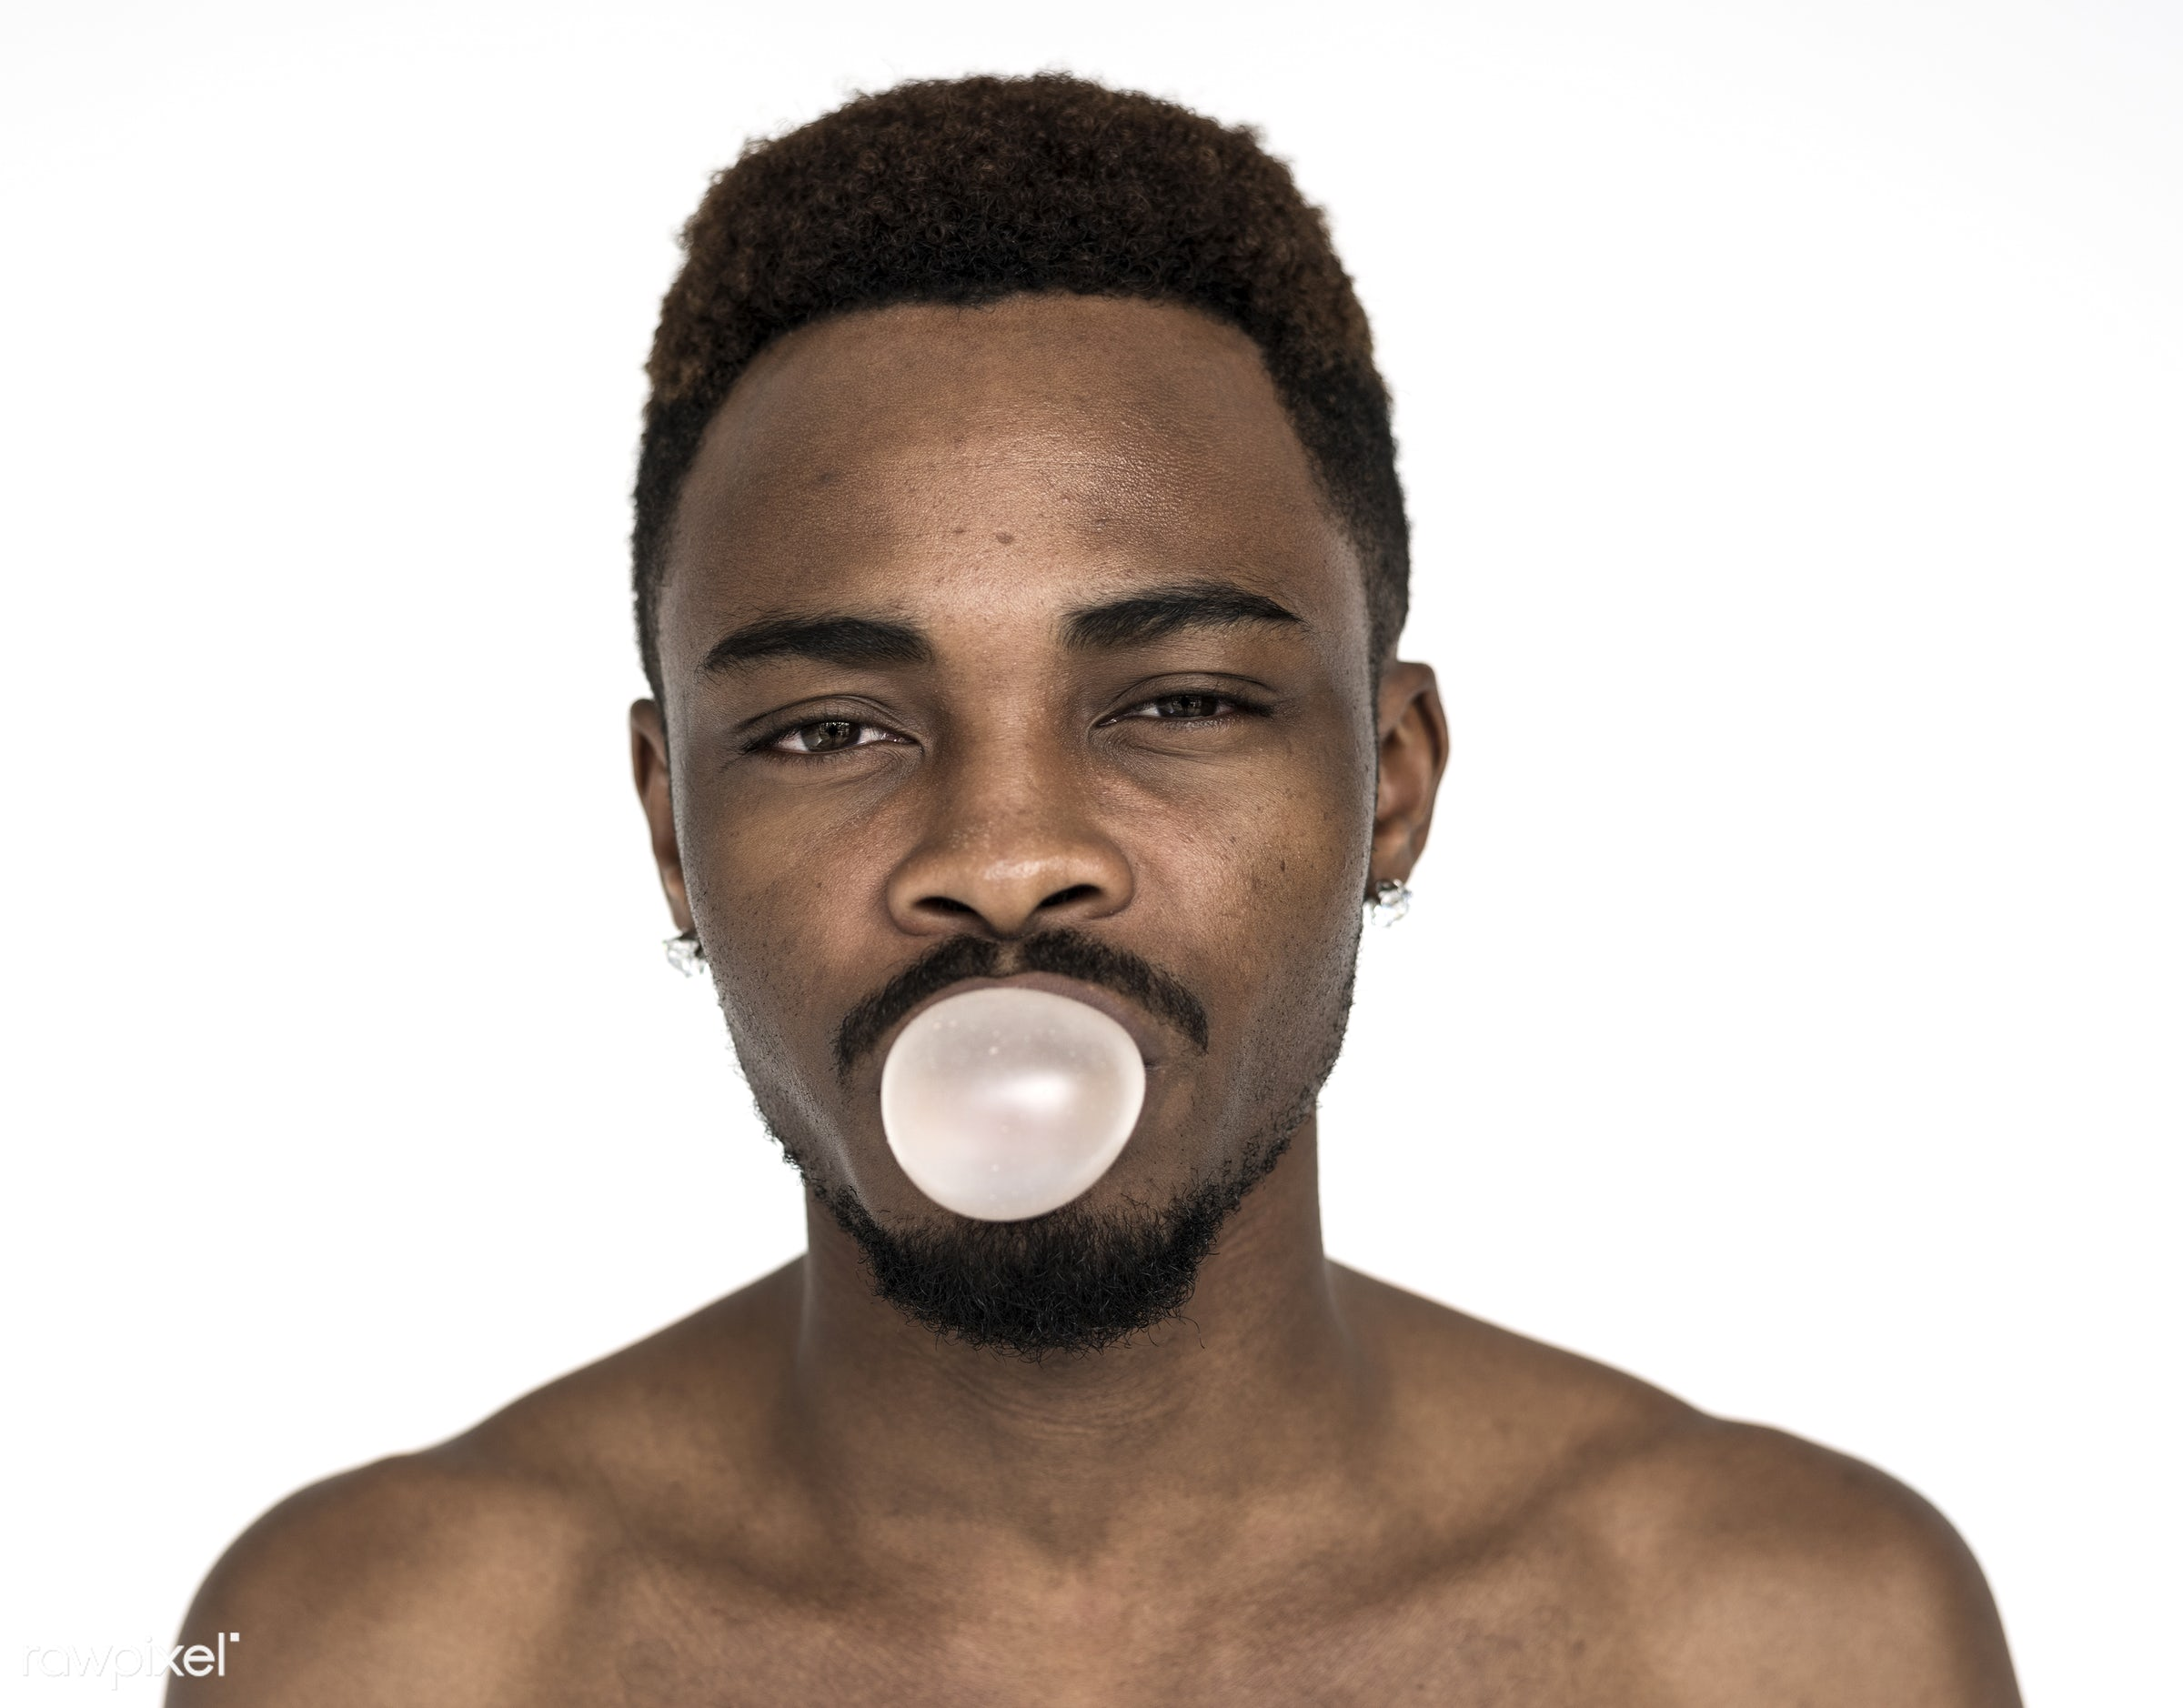 studio, expression, body, person, model, isolated on white, race, people, bubblegum, looking, fit, style, american,...